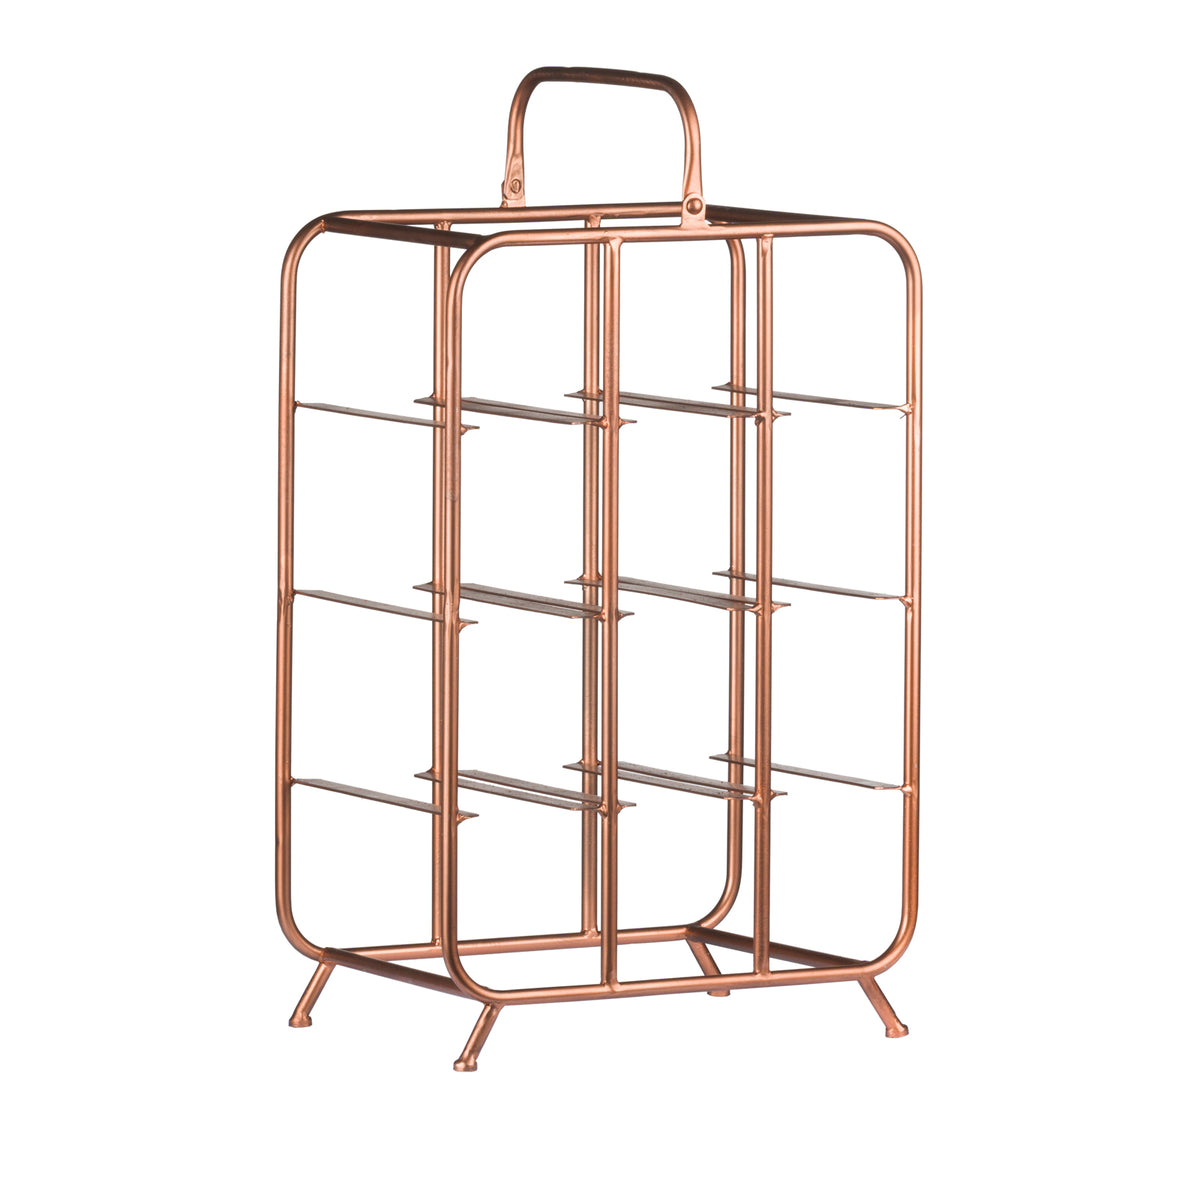 Industrial Copper 9 Bottle Wine Rack Holder by Roseland Furniture